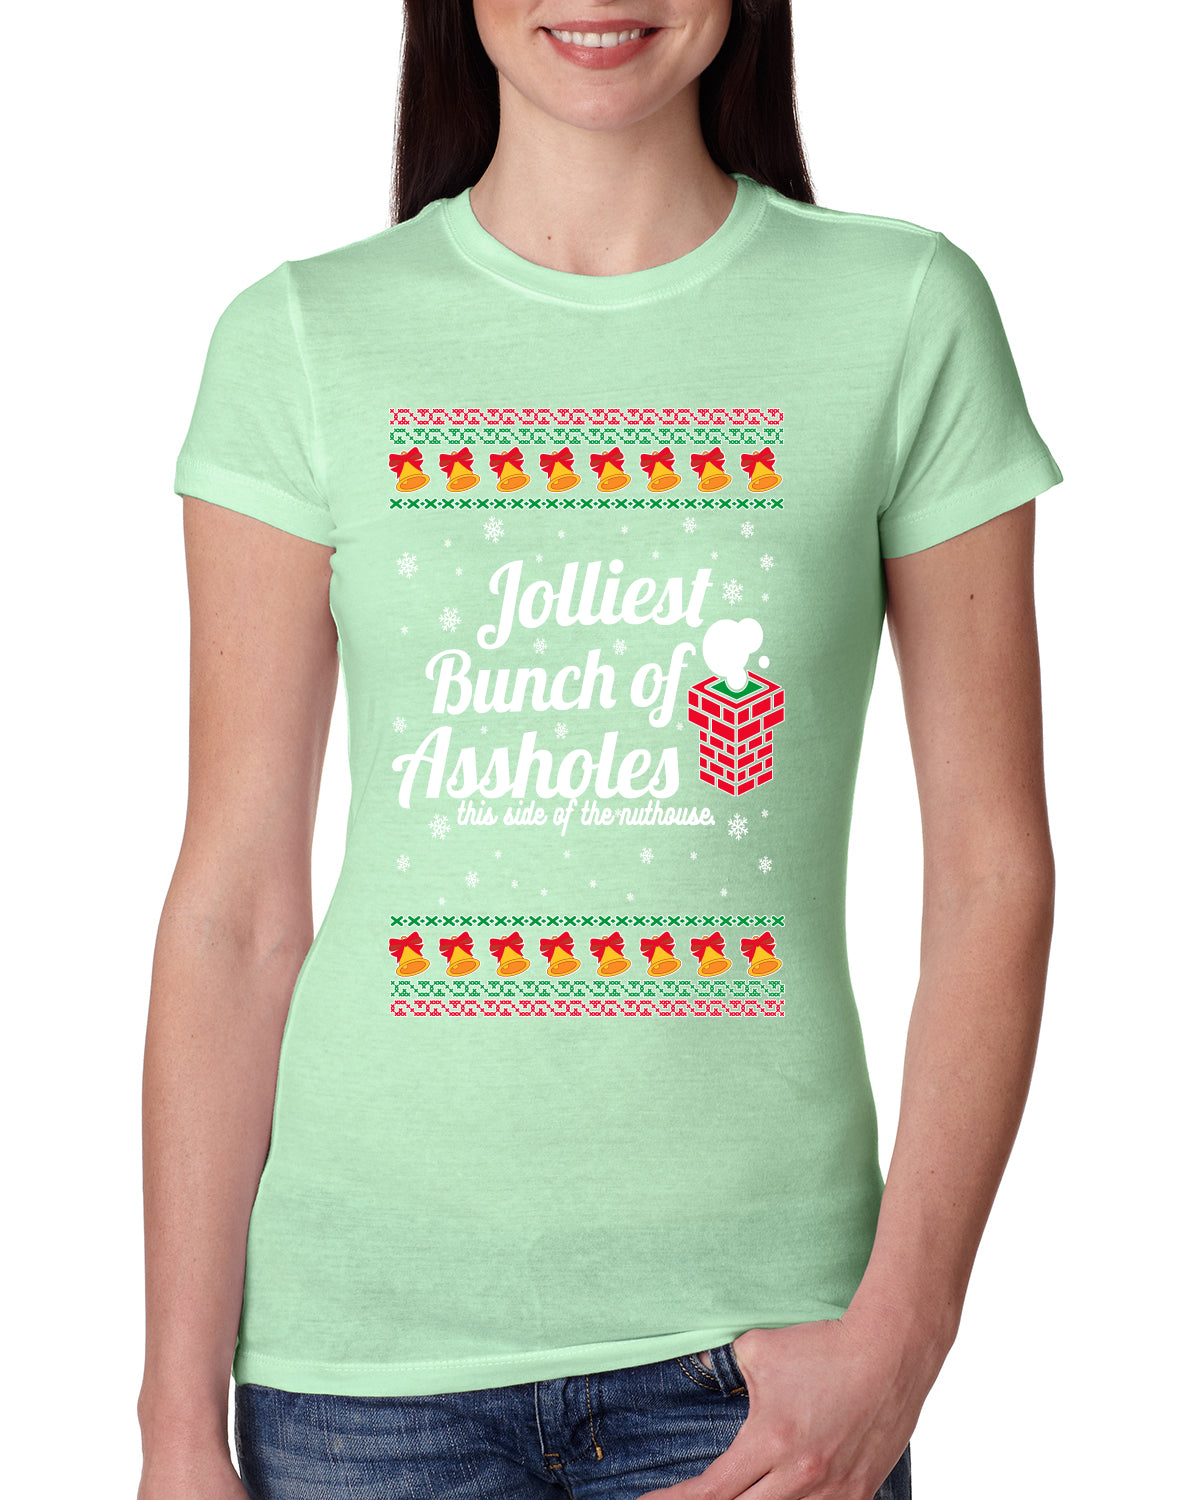 Jolliest Bunch of Assholes Xmas Movie Ugly Christmas Sweater Womens Slim Fit Junior Tee